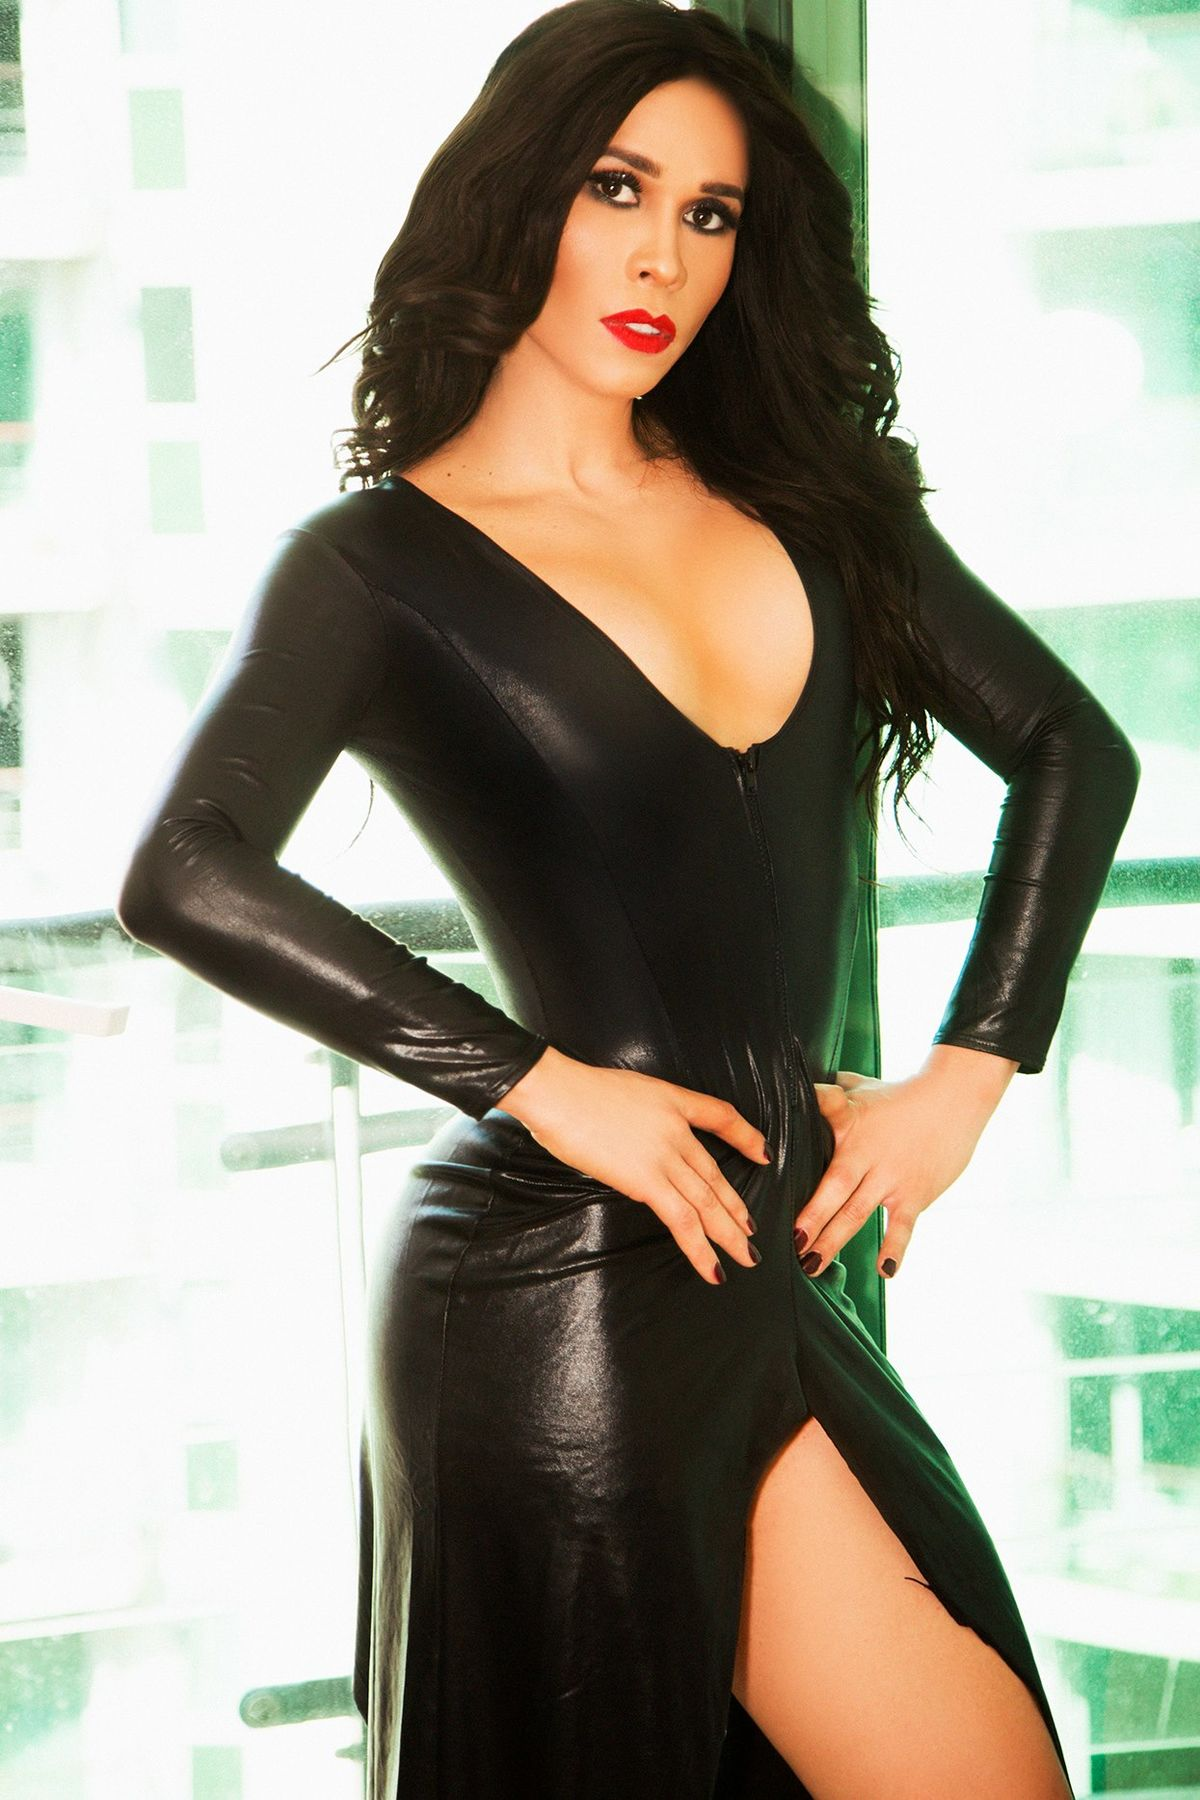 Flavia Mayfair london, Brazilian Transsexual escort in London